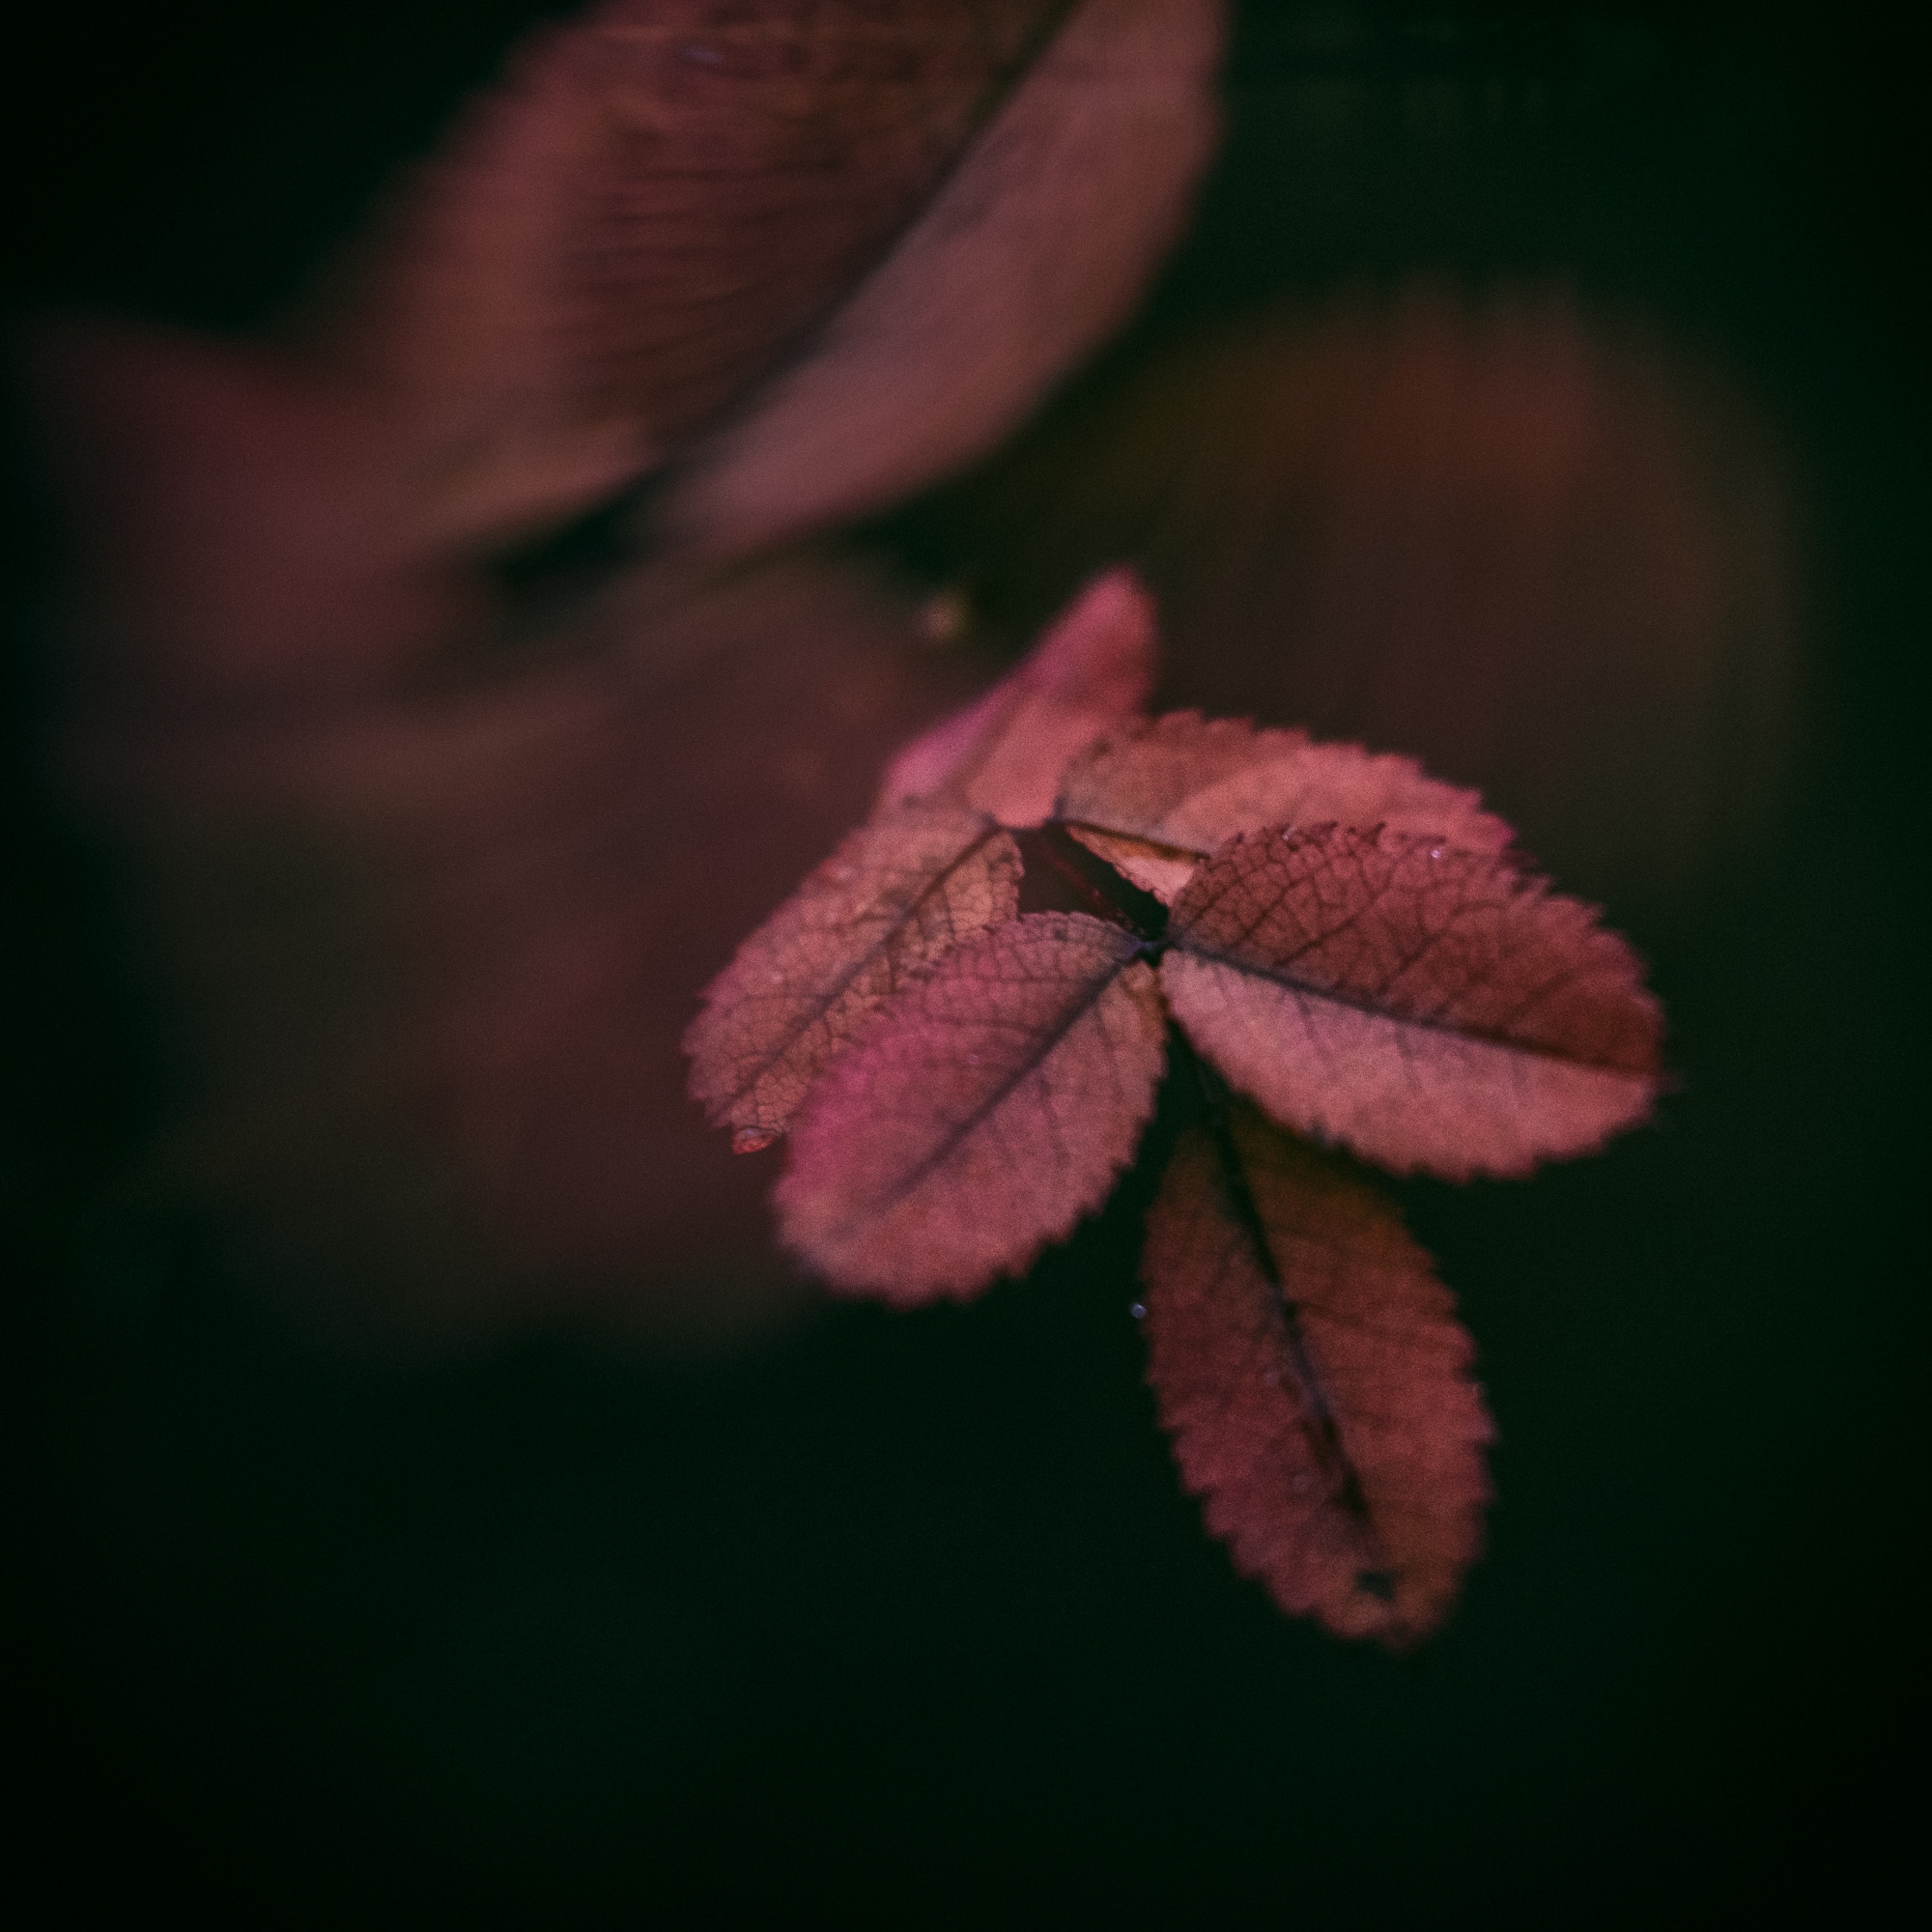 Searching color grey day - nature - peter_skoglund | ello